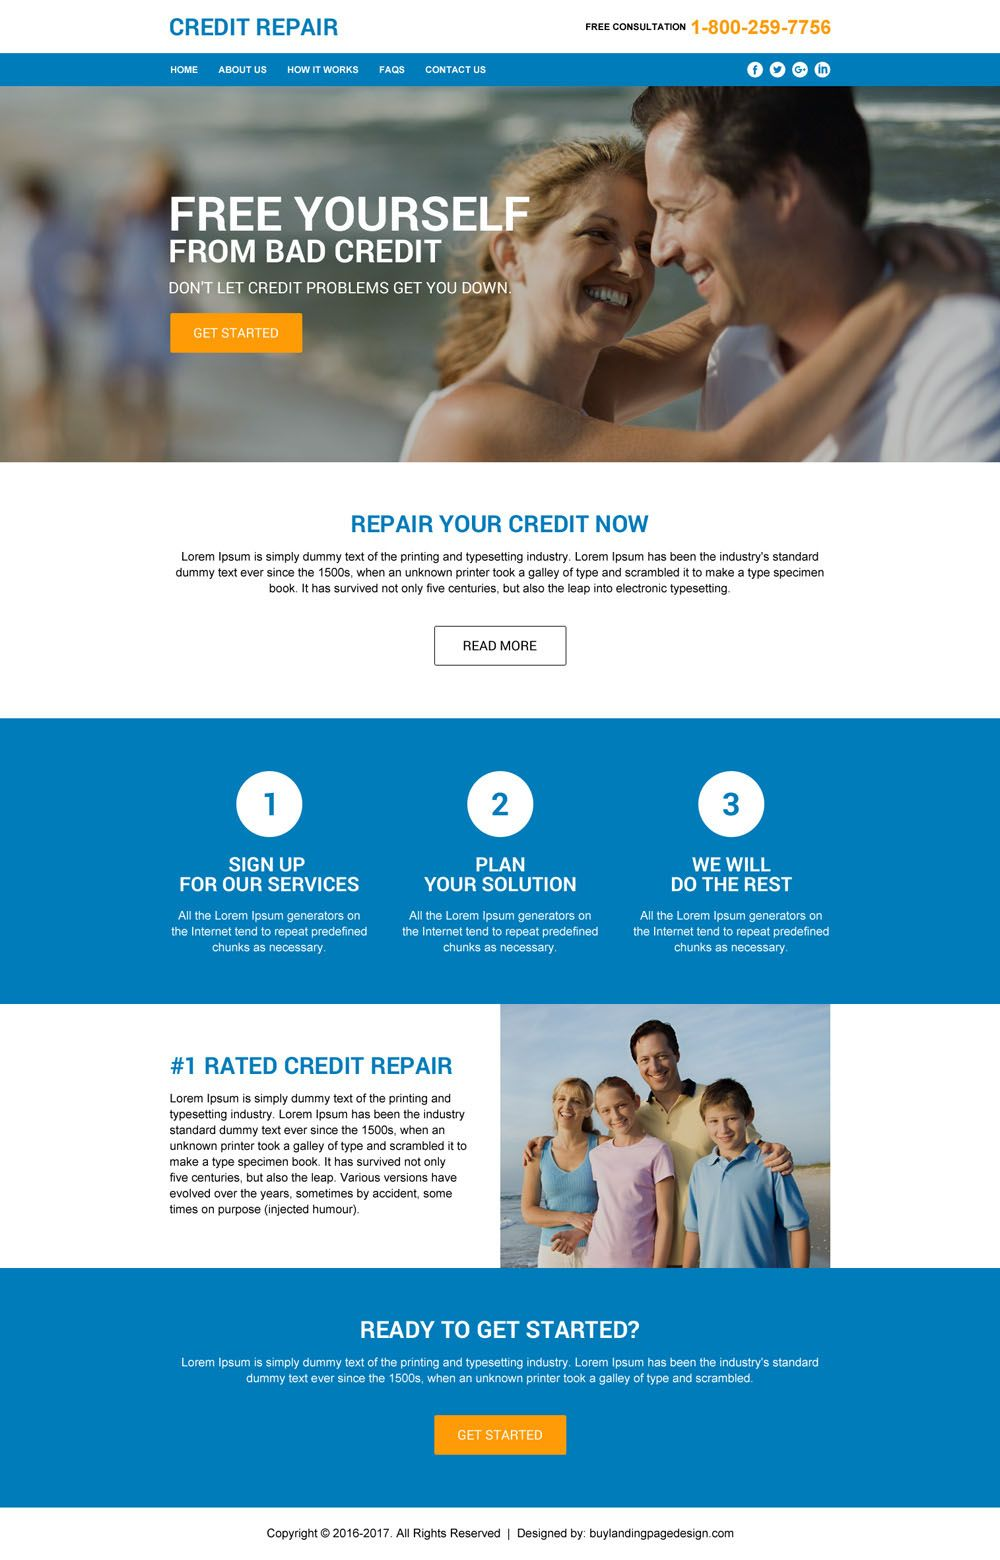 Credit Repair Html Templates To Create Your Brand New Website - Professional website templates